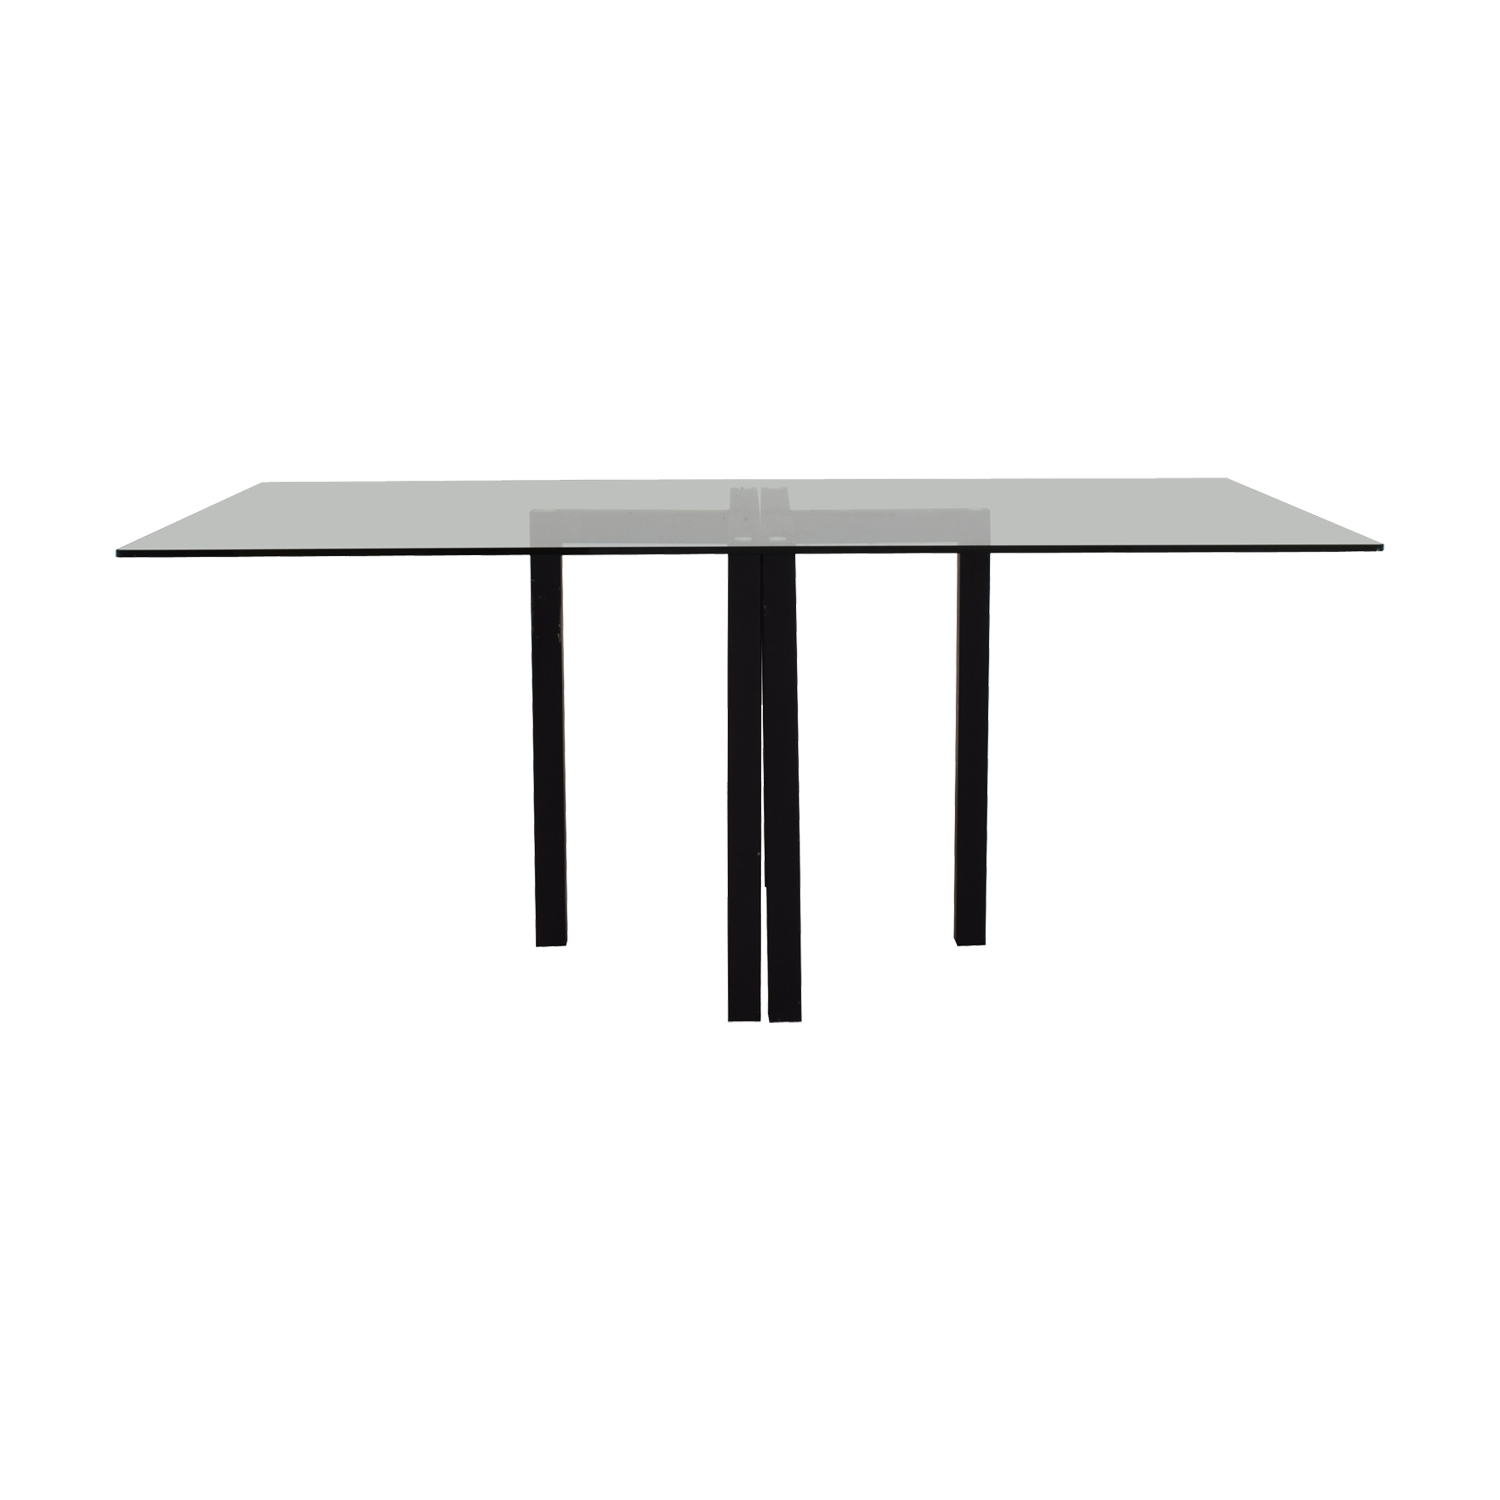 Crate & Barrel Crate & Barrel Glass Dining Table or Desk for sale